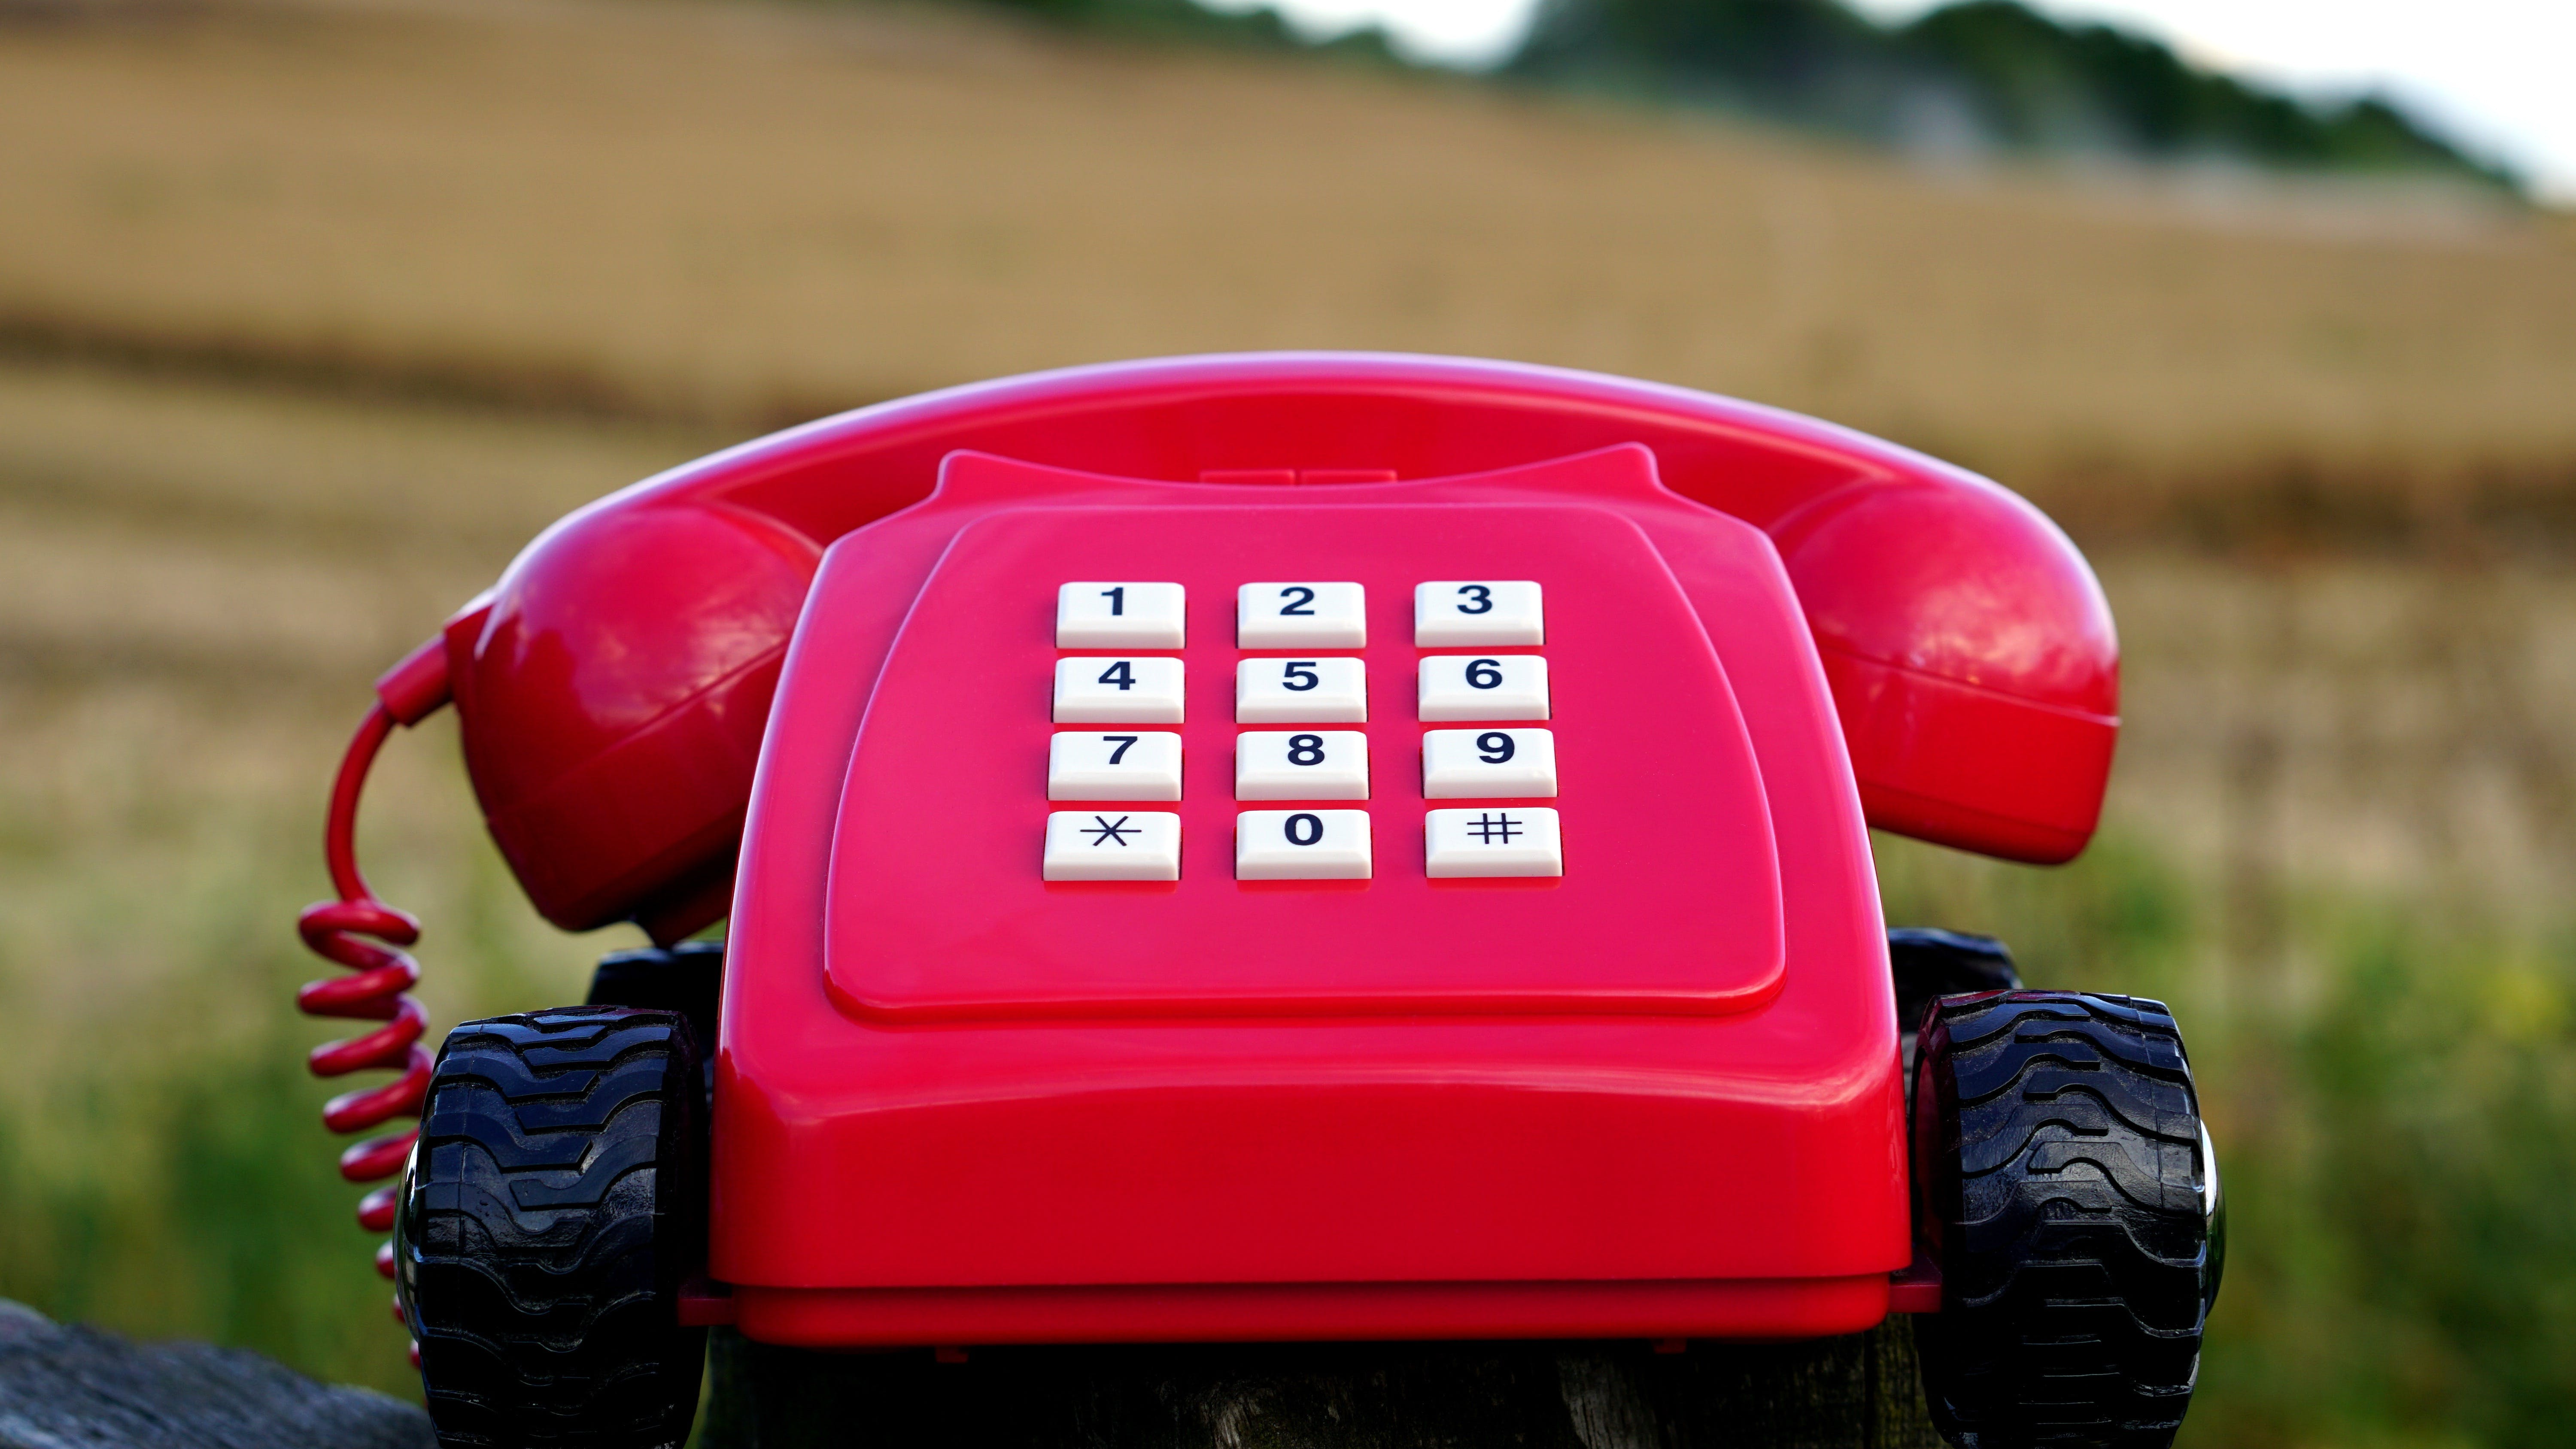 Red Rotary Phone With Black Wheels Near Brown Grasses during Day Time